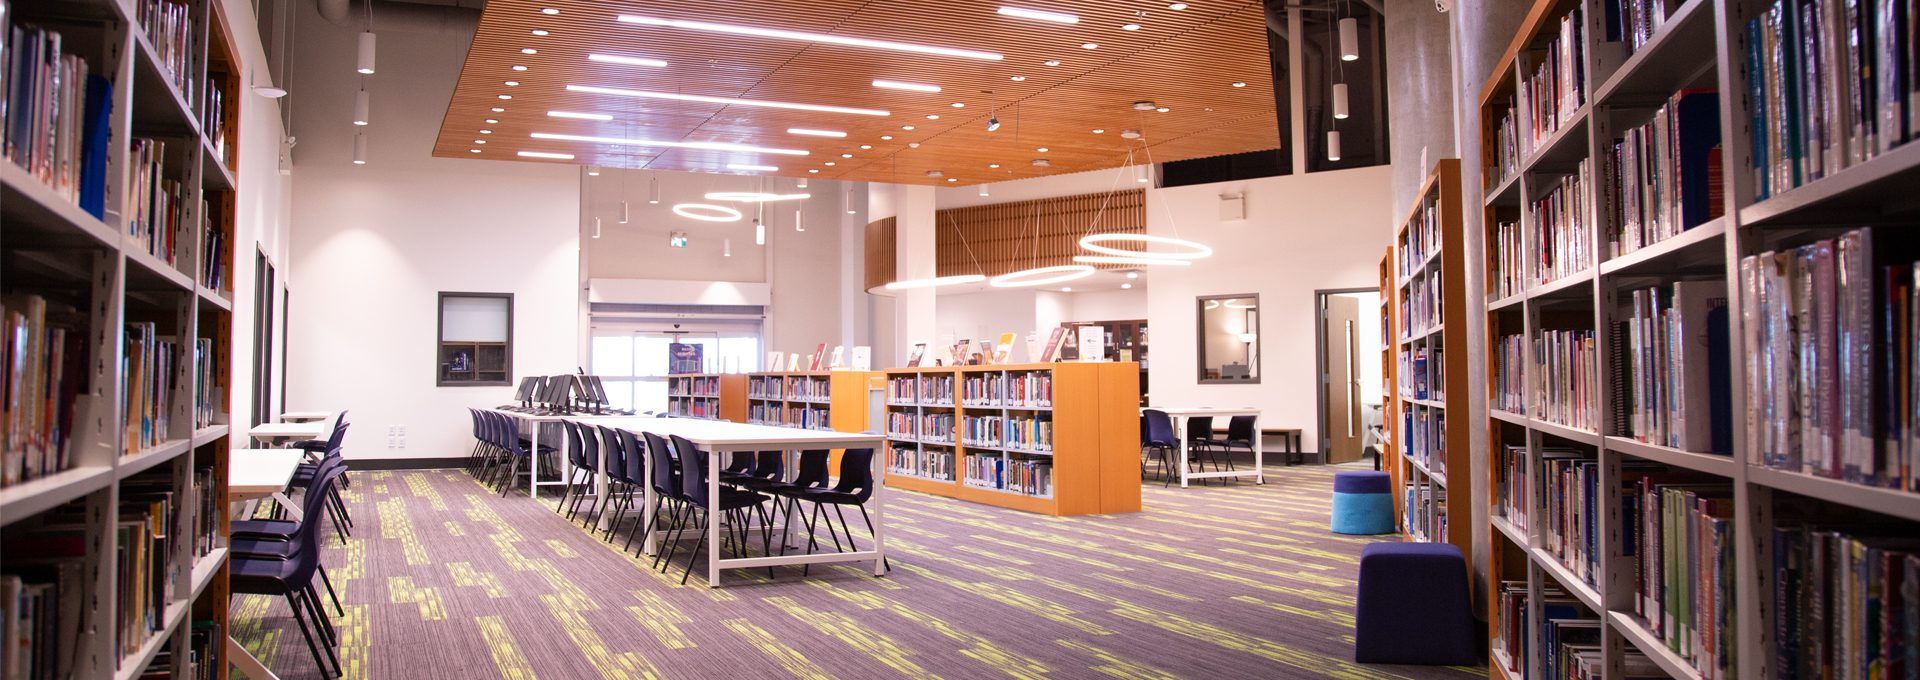 Library at Alexander College